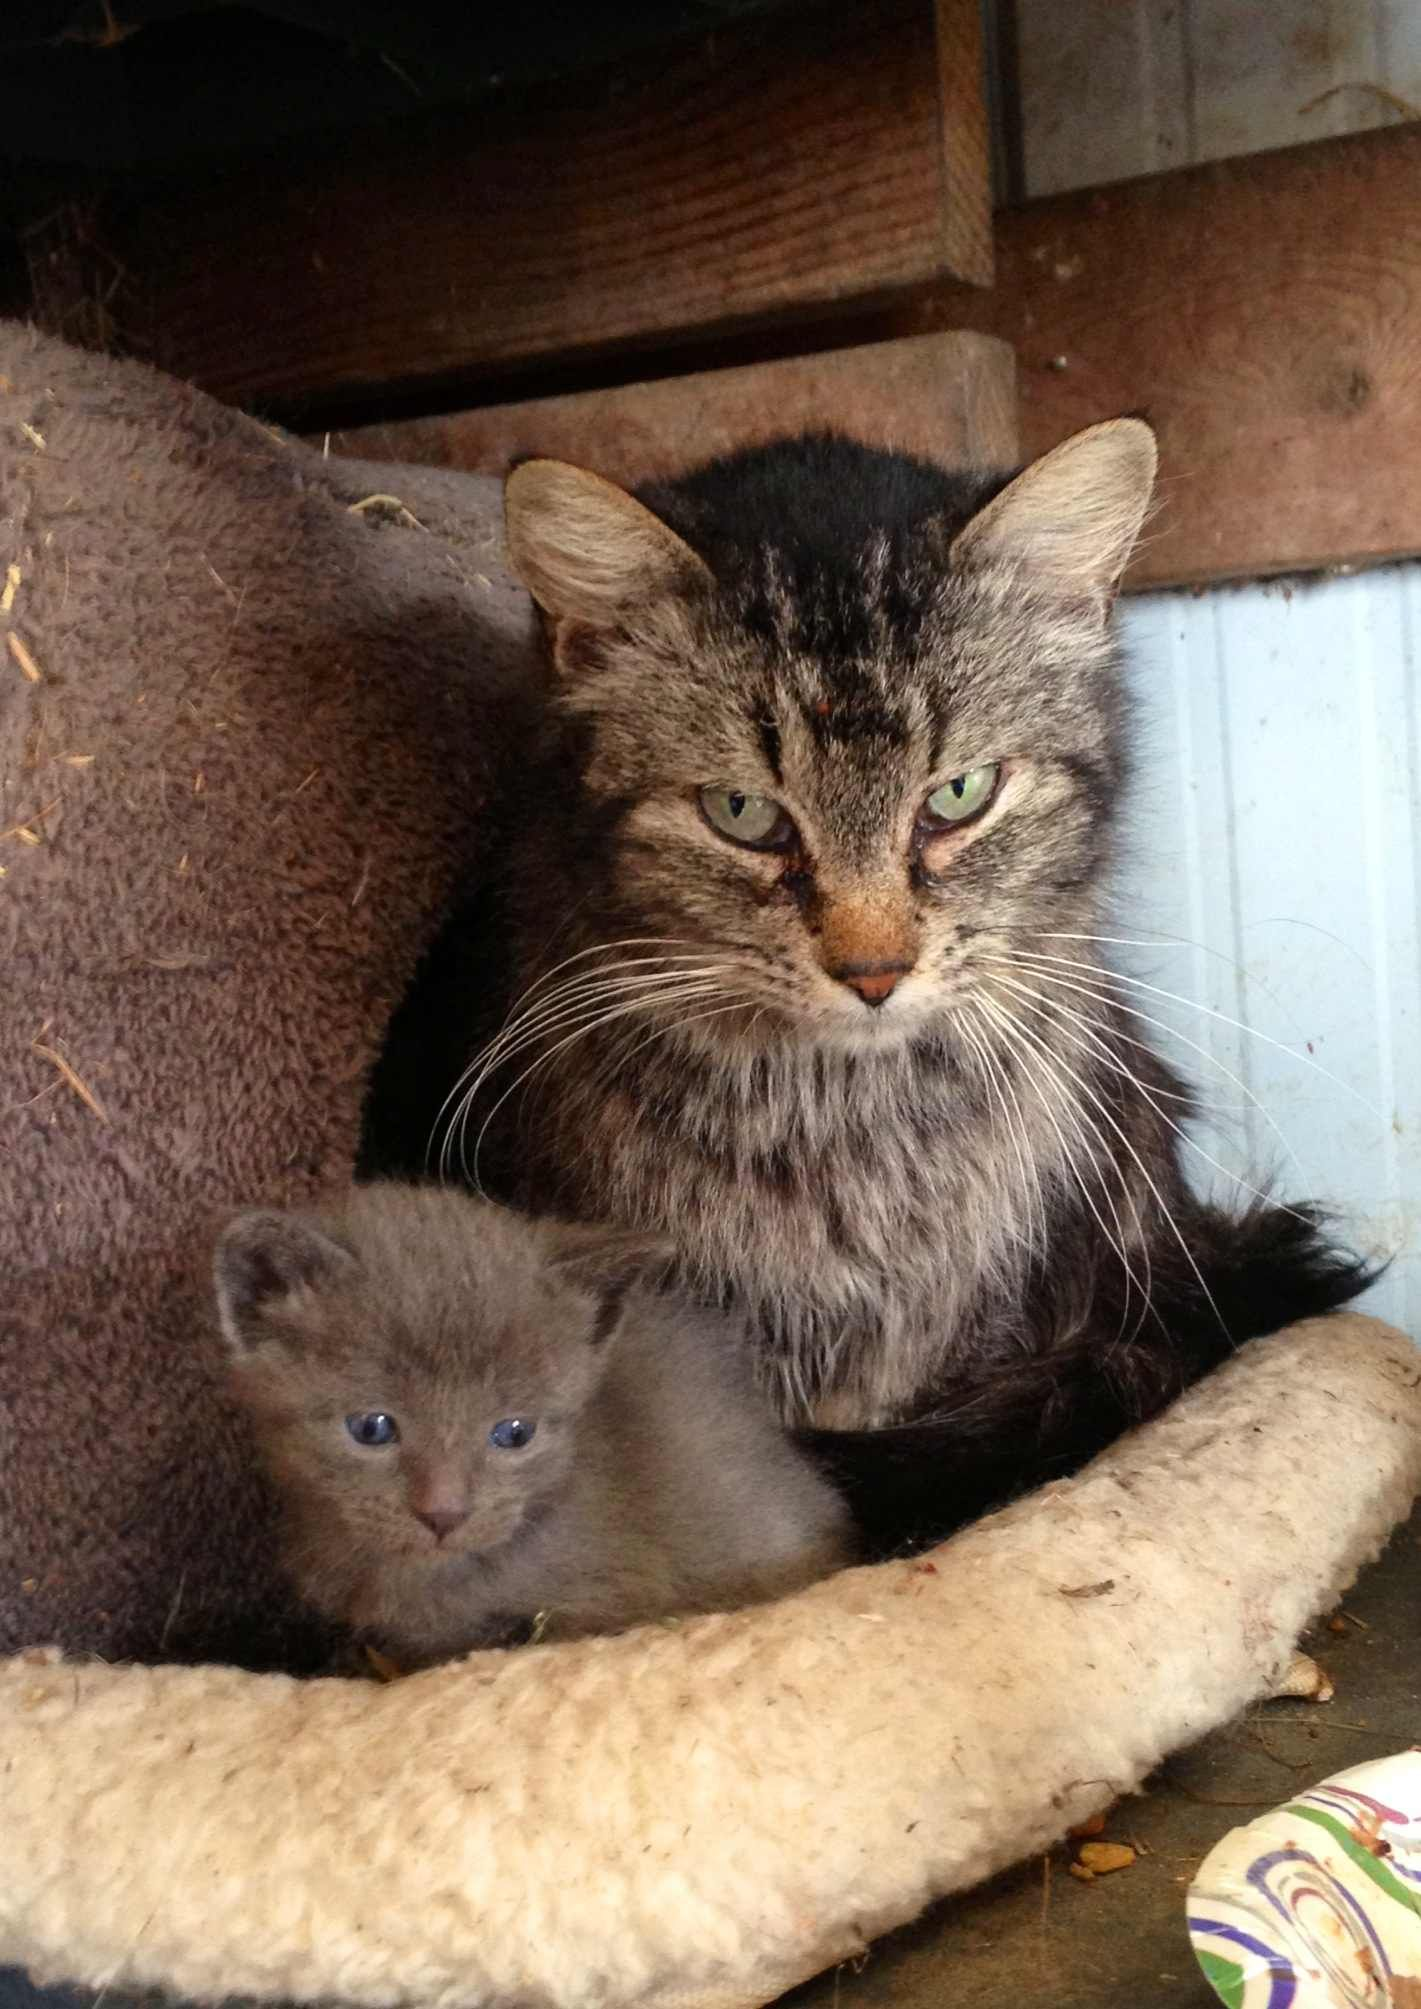 Http I Imgur Com Oucwzbc Jpg Cats Kittens Cutest Cats And Kittens